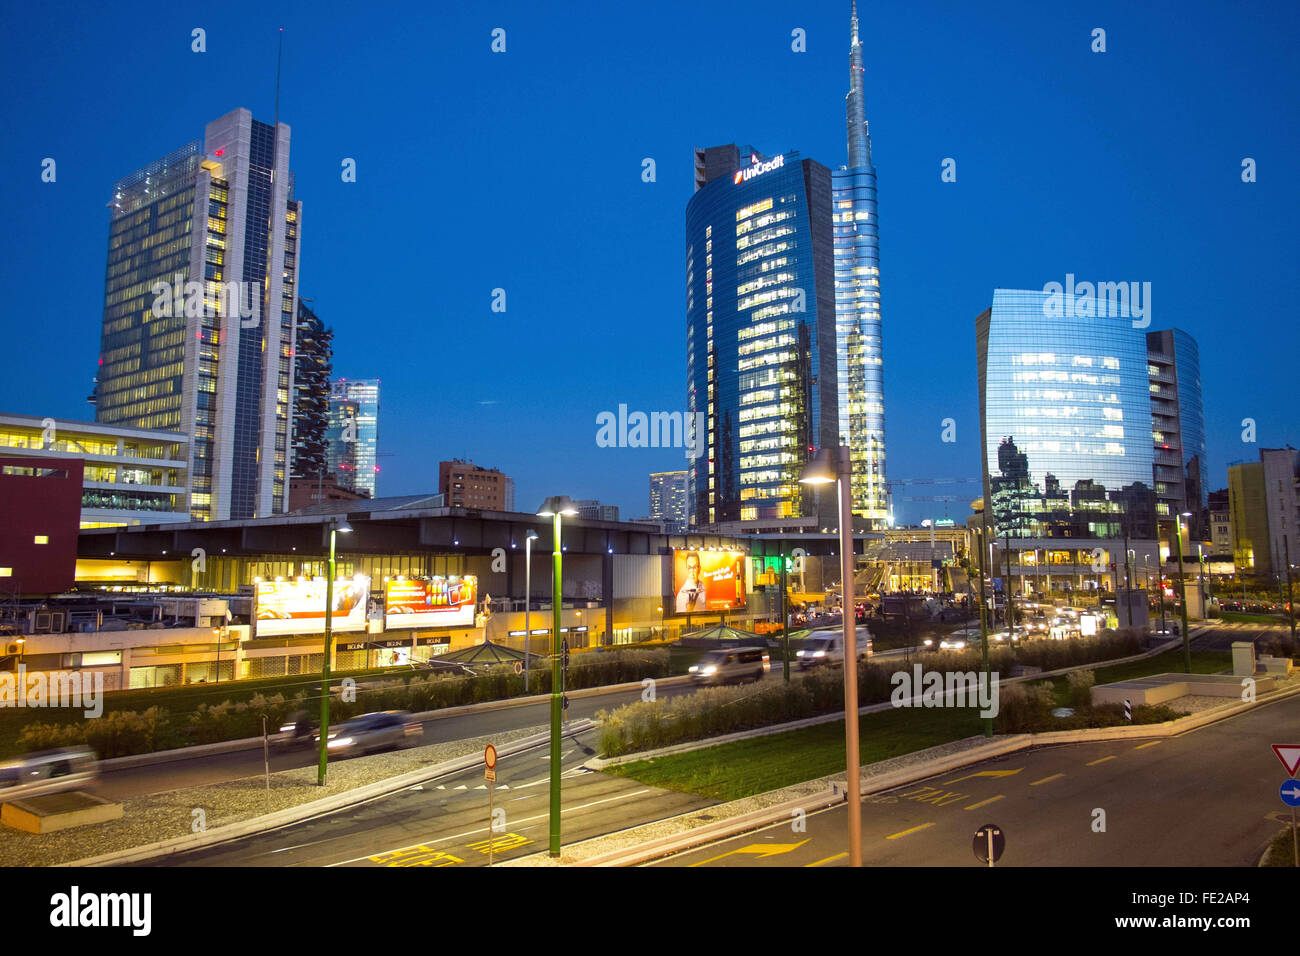 New buildings constructed in the area of Garibaldi Station, Porta Nuova District. The Unicredit Tower in the background - Stock Image